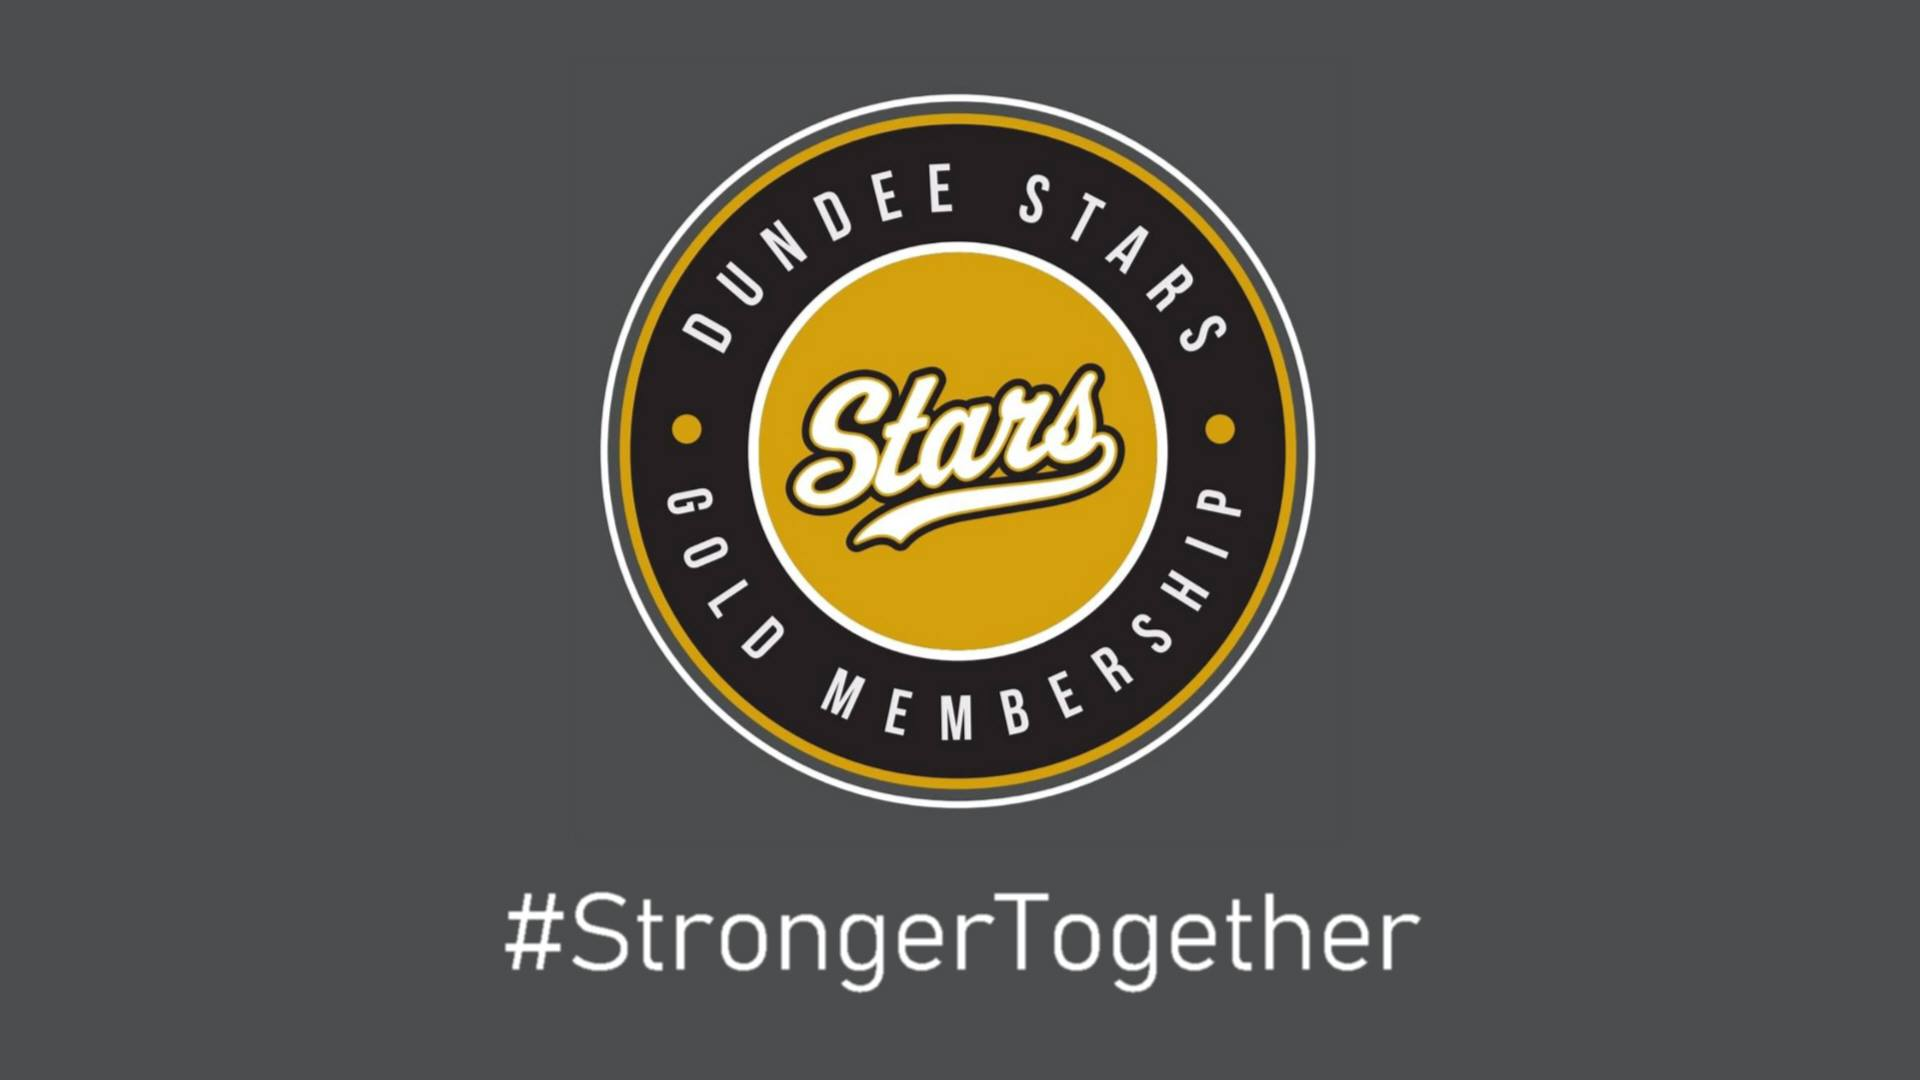 DUNDEE STARS GOLD MEMBERSHIP CLUB – STRONGER TOGETHER